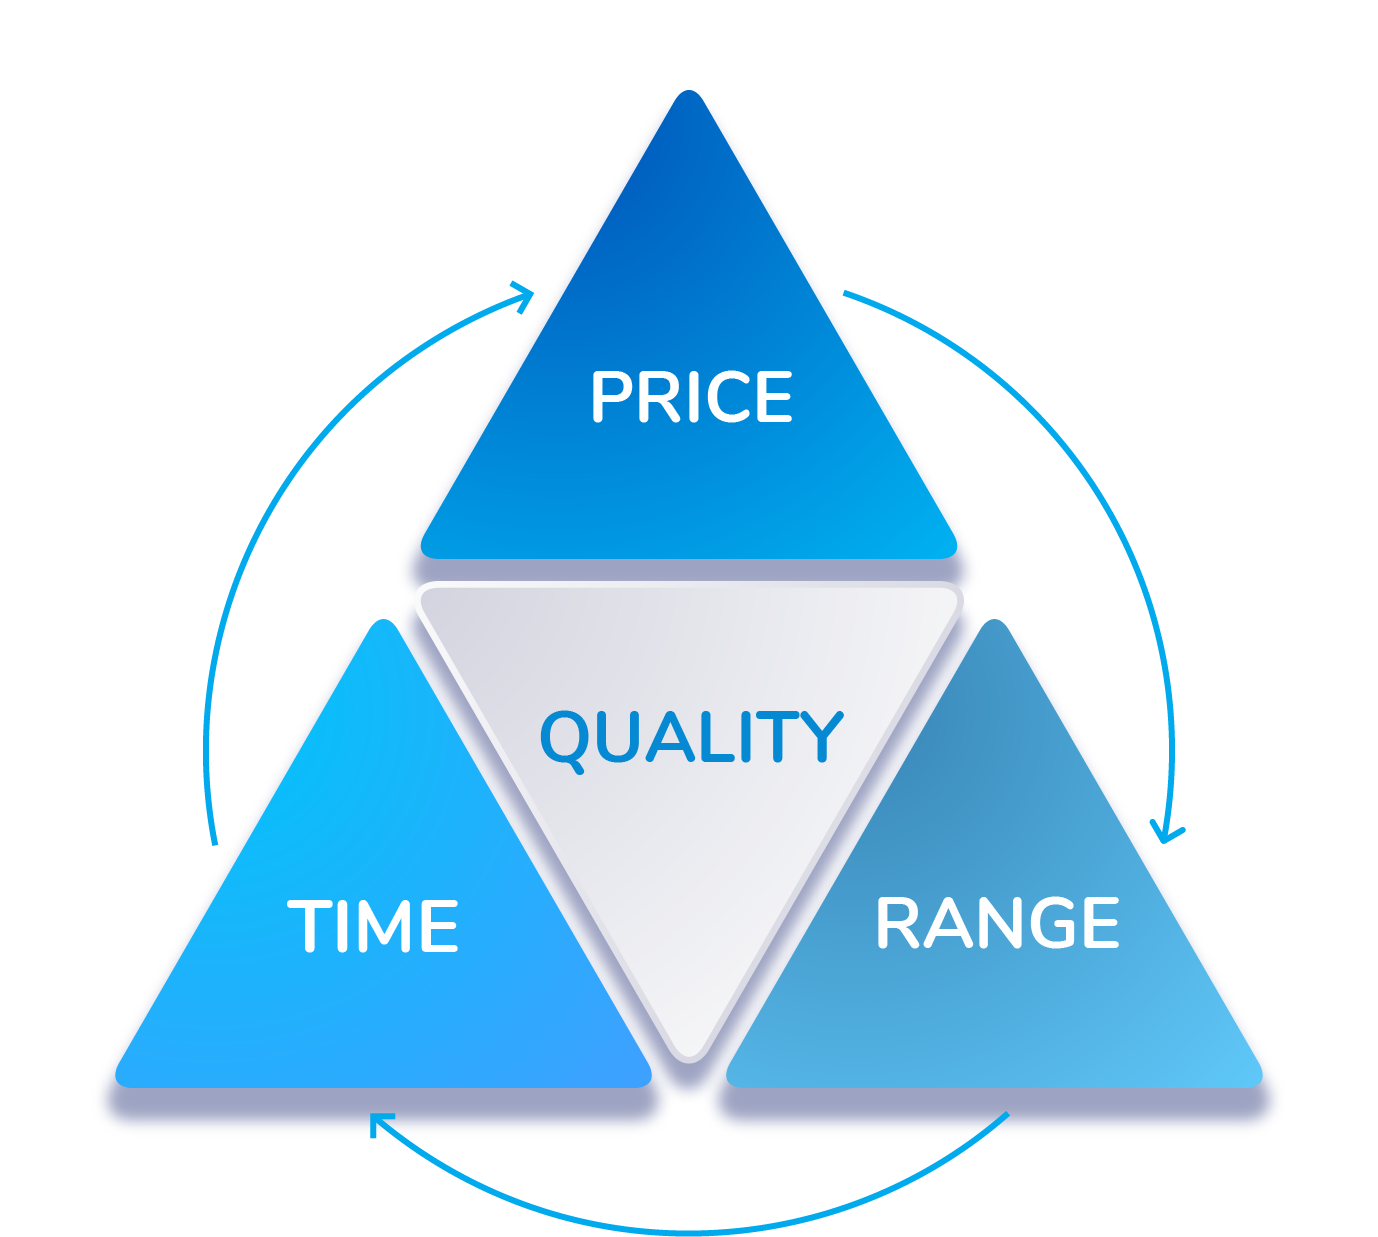 Diagram of quality components